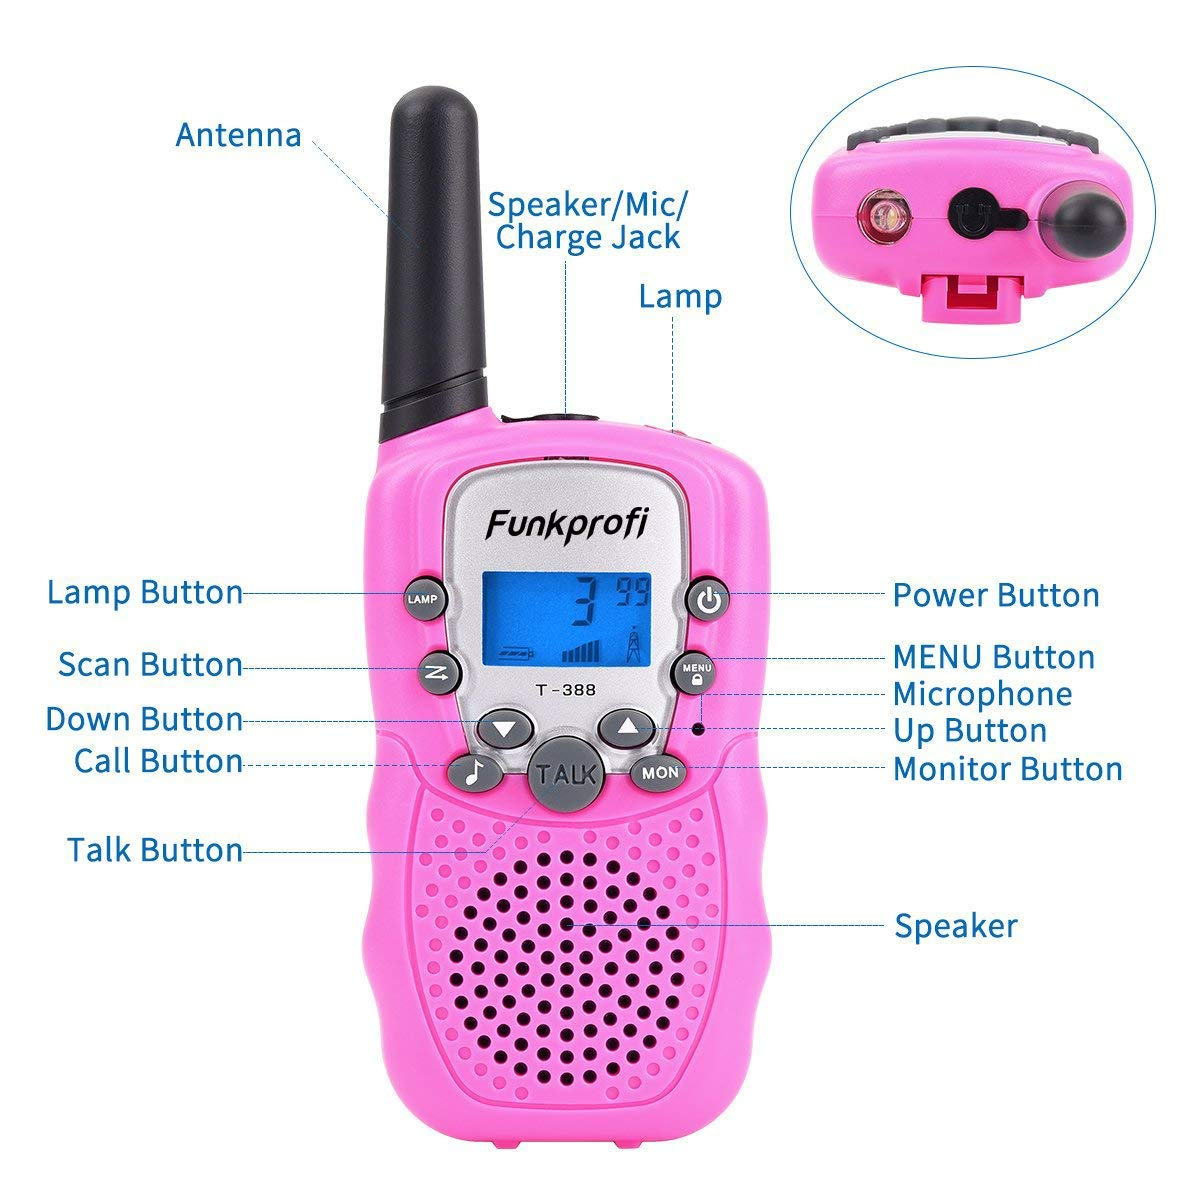 Funkprofi Walkie Talkies for Kids 22 Channels Long Range Rechargeable Walkie Talkies with Battery and Charger, Gift for Boys and Girls, 1 Pair (Pink) by Funkprofi (Image #4)